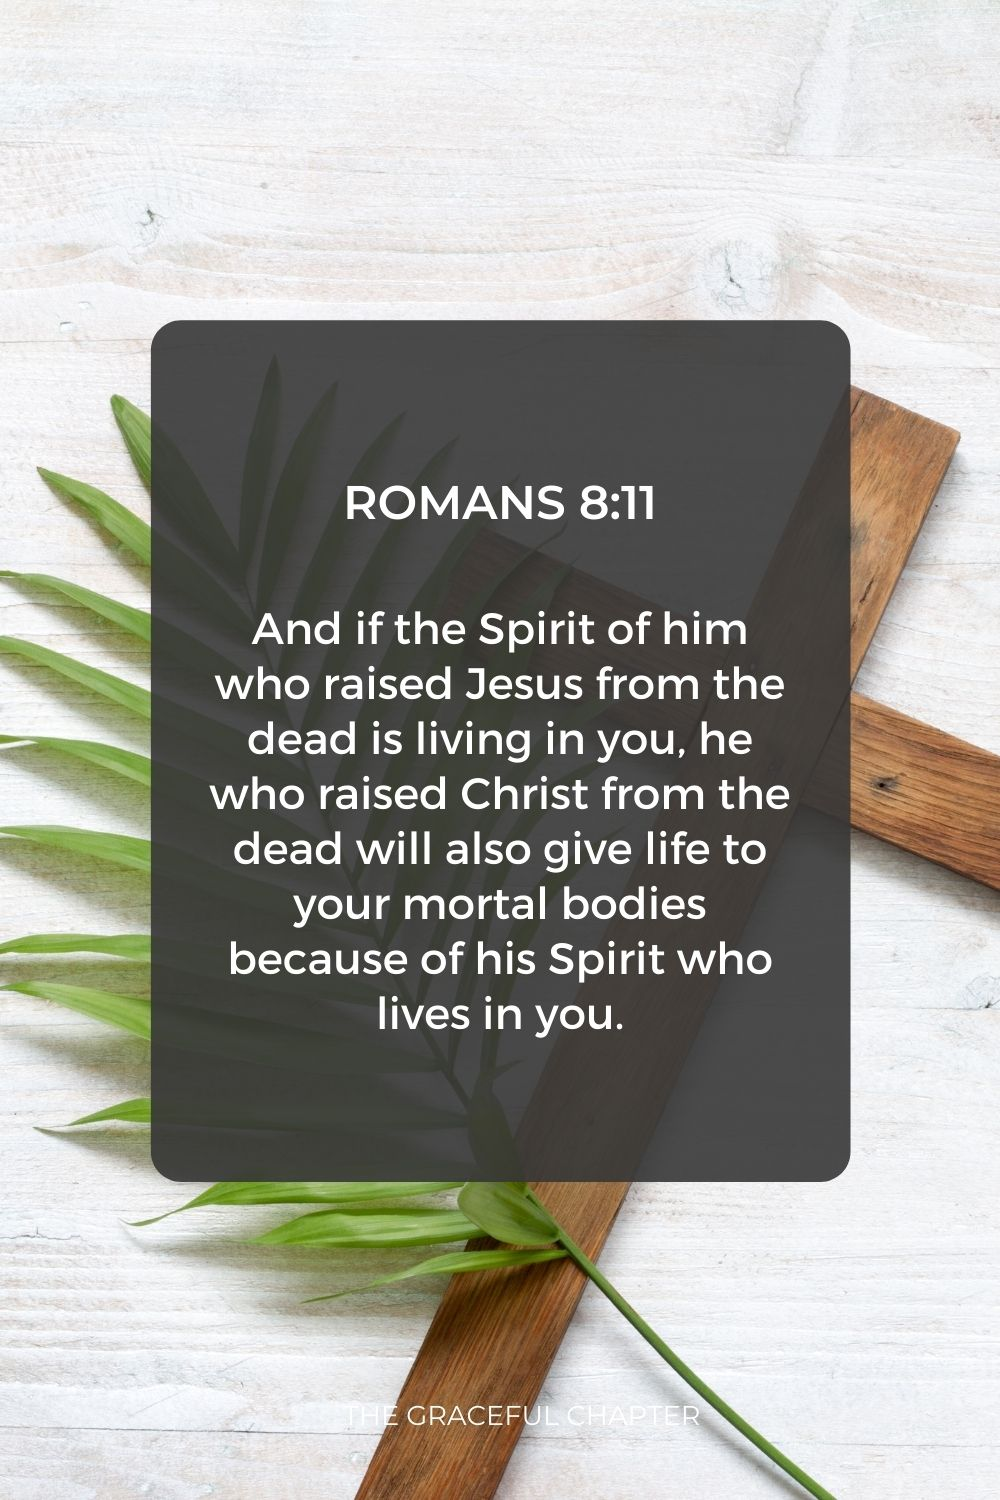 And if the Spirit of him who raised Jesus from the dead is living in you, he who raised Christ from the dead will also give life to your mortal bodies because of his Spirit who lives in you. Romans 8:11